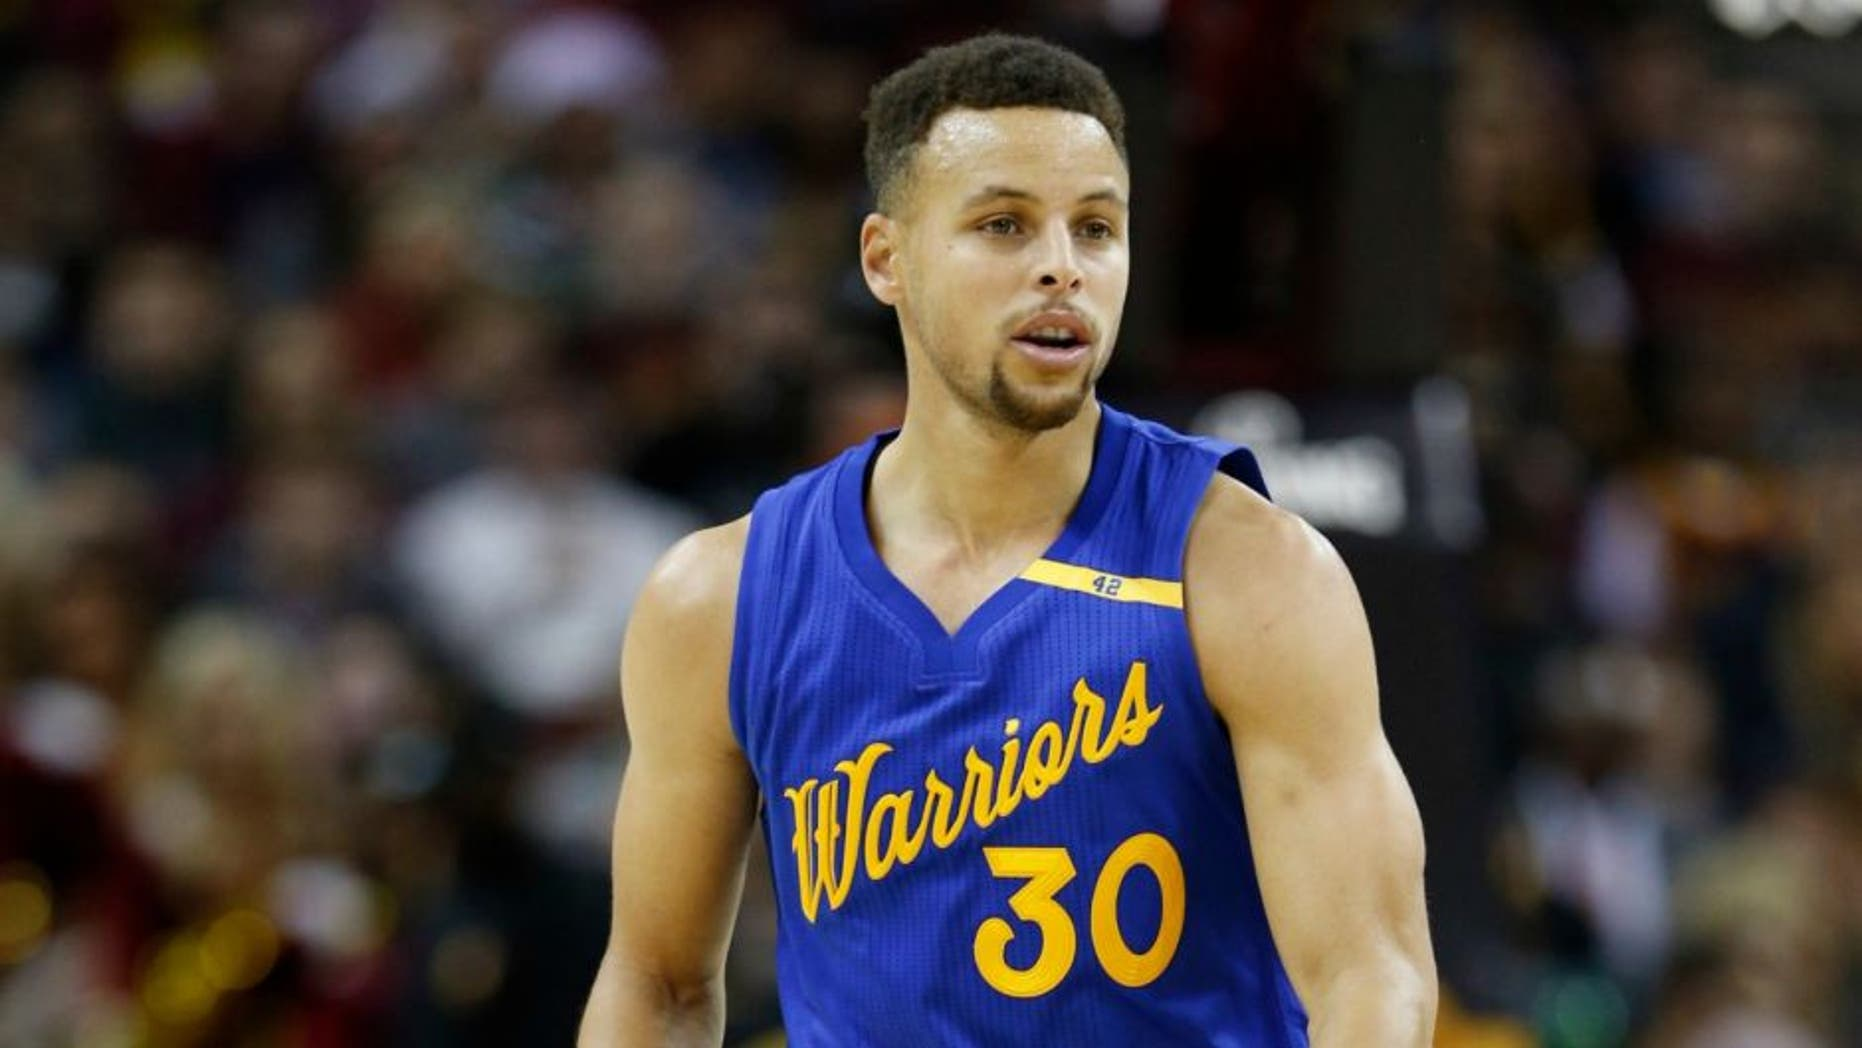 Dec 25, 2016; Cleveland, OH, USA; Golden State Warriors guard Stephen Curry (30) brings the ball up court against the Cleveland Cavaliers at Quicken Loans Arena. Cleveland defeats Golden State 109-108. Mandatory Credit: Brian Spurlock-USA TODAY Sports